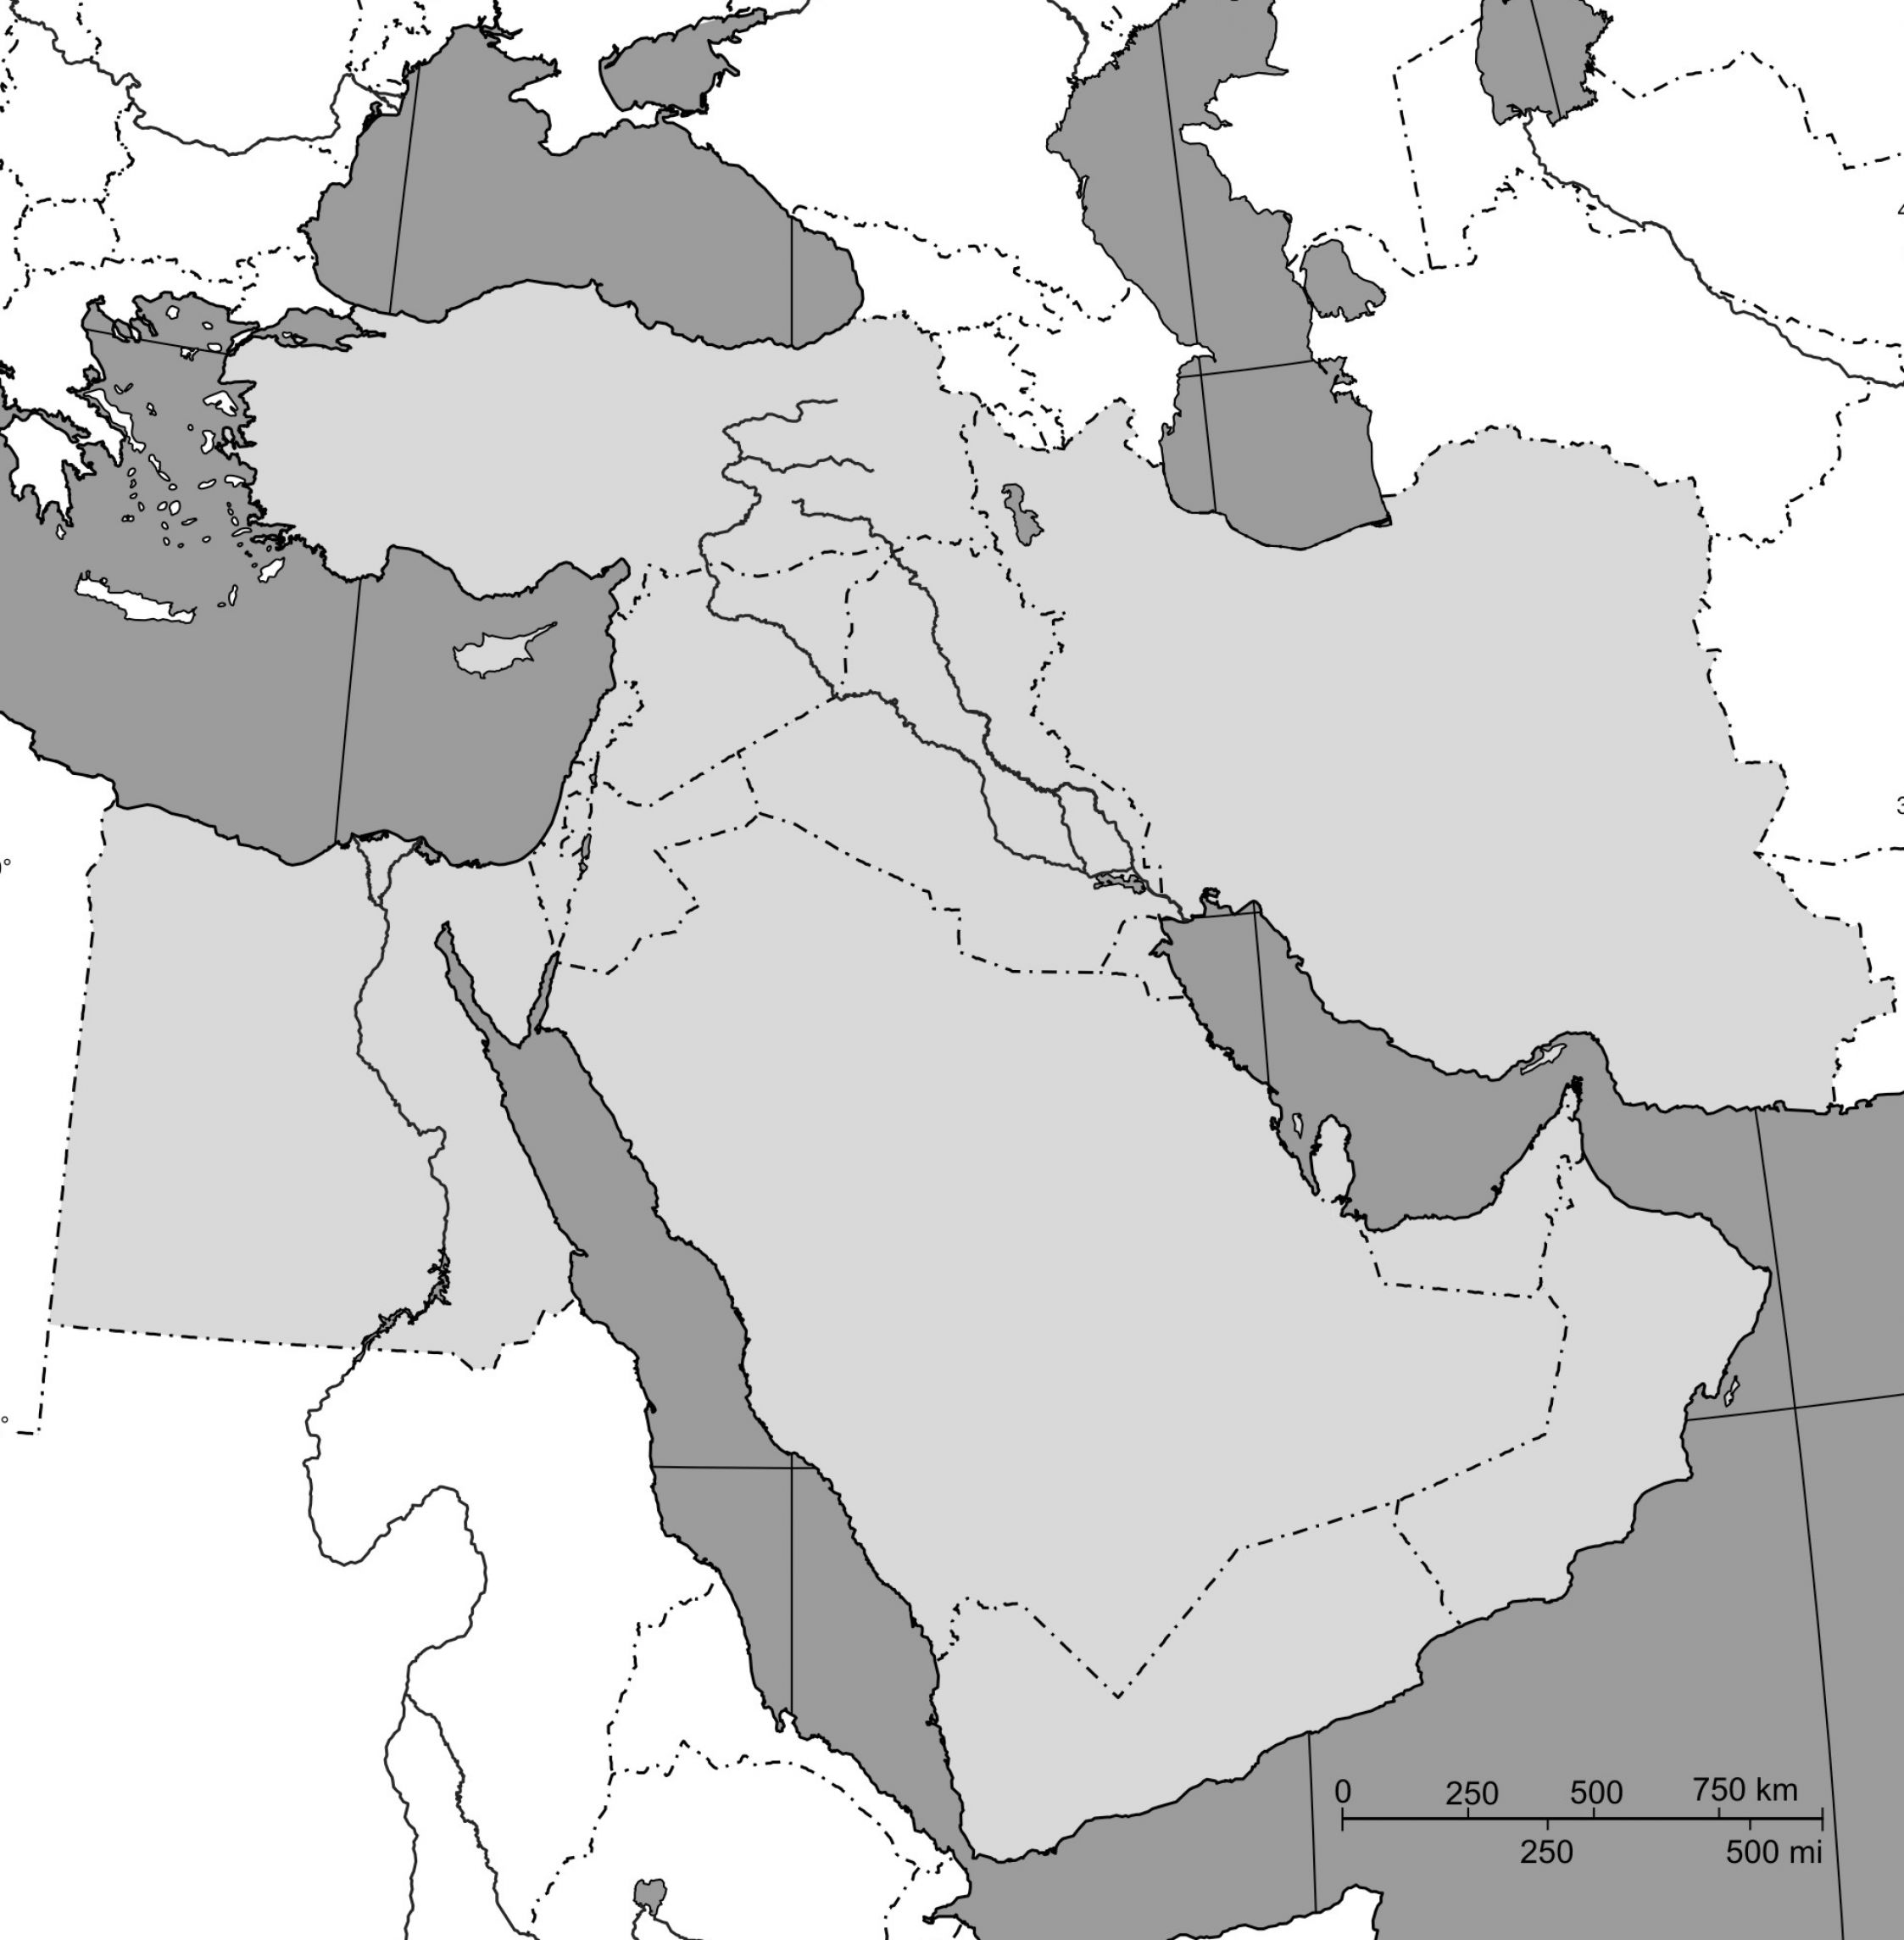 Pin Blank Political Map Of Southwest Asia Pictures 1 on Pinterest